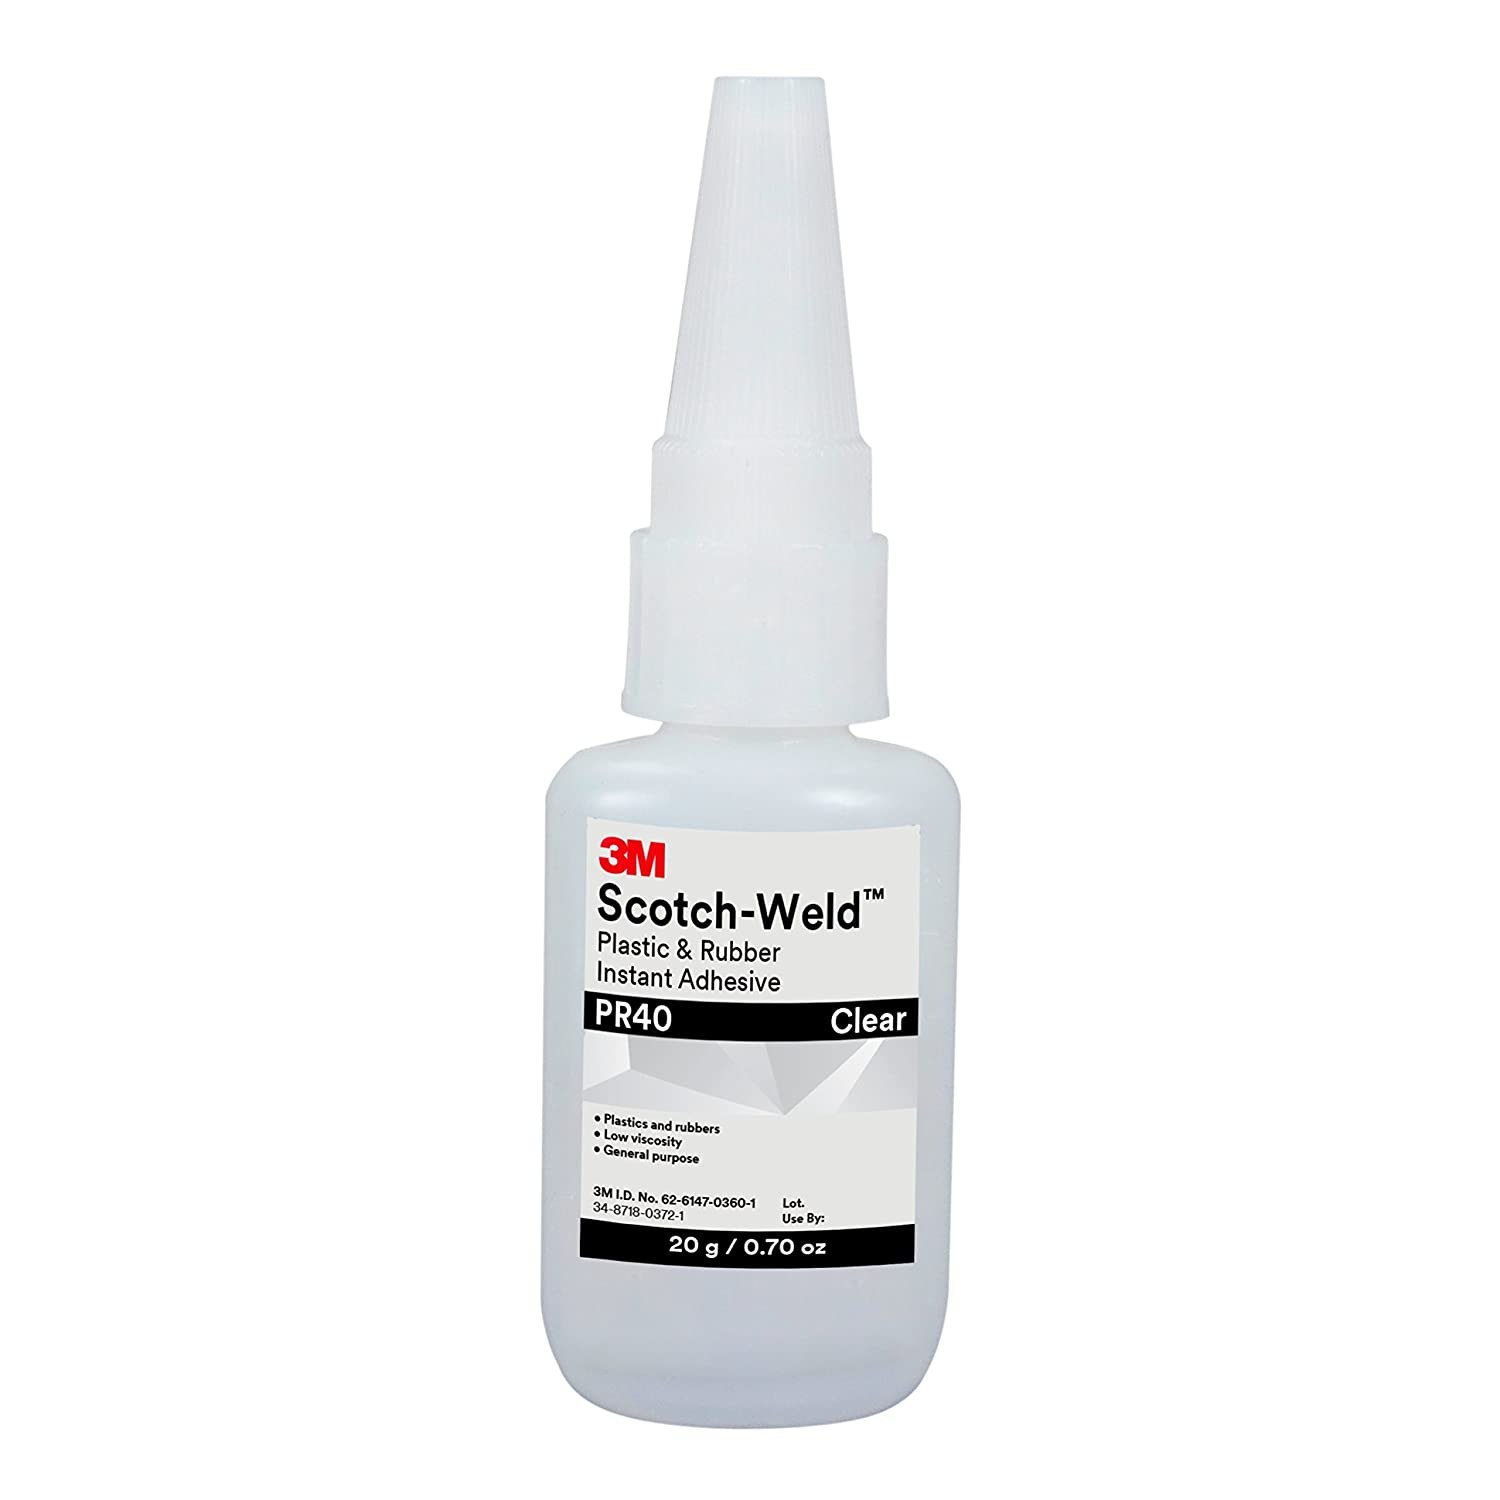 3M Rubber Clear Instant Adhesive